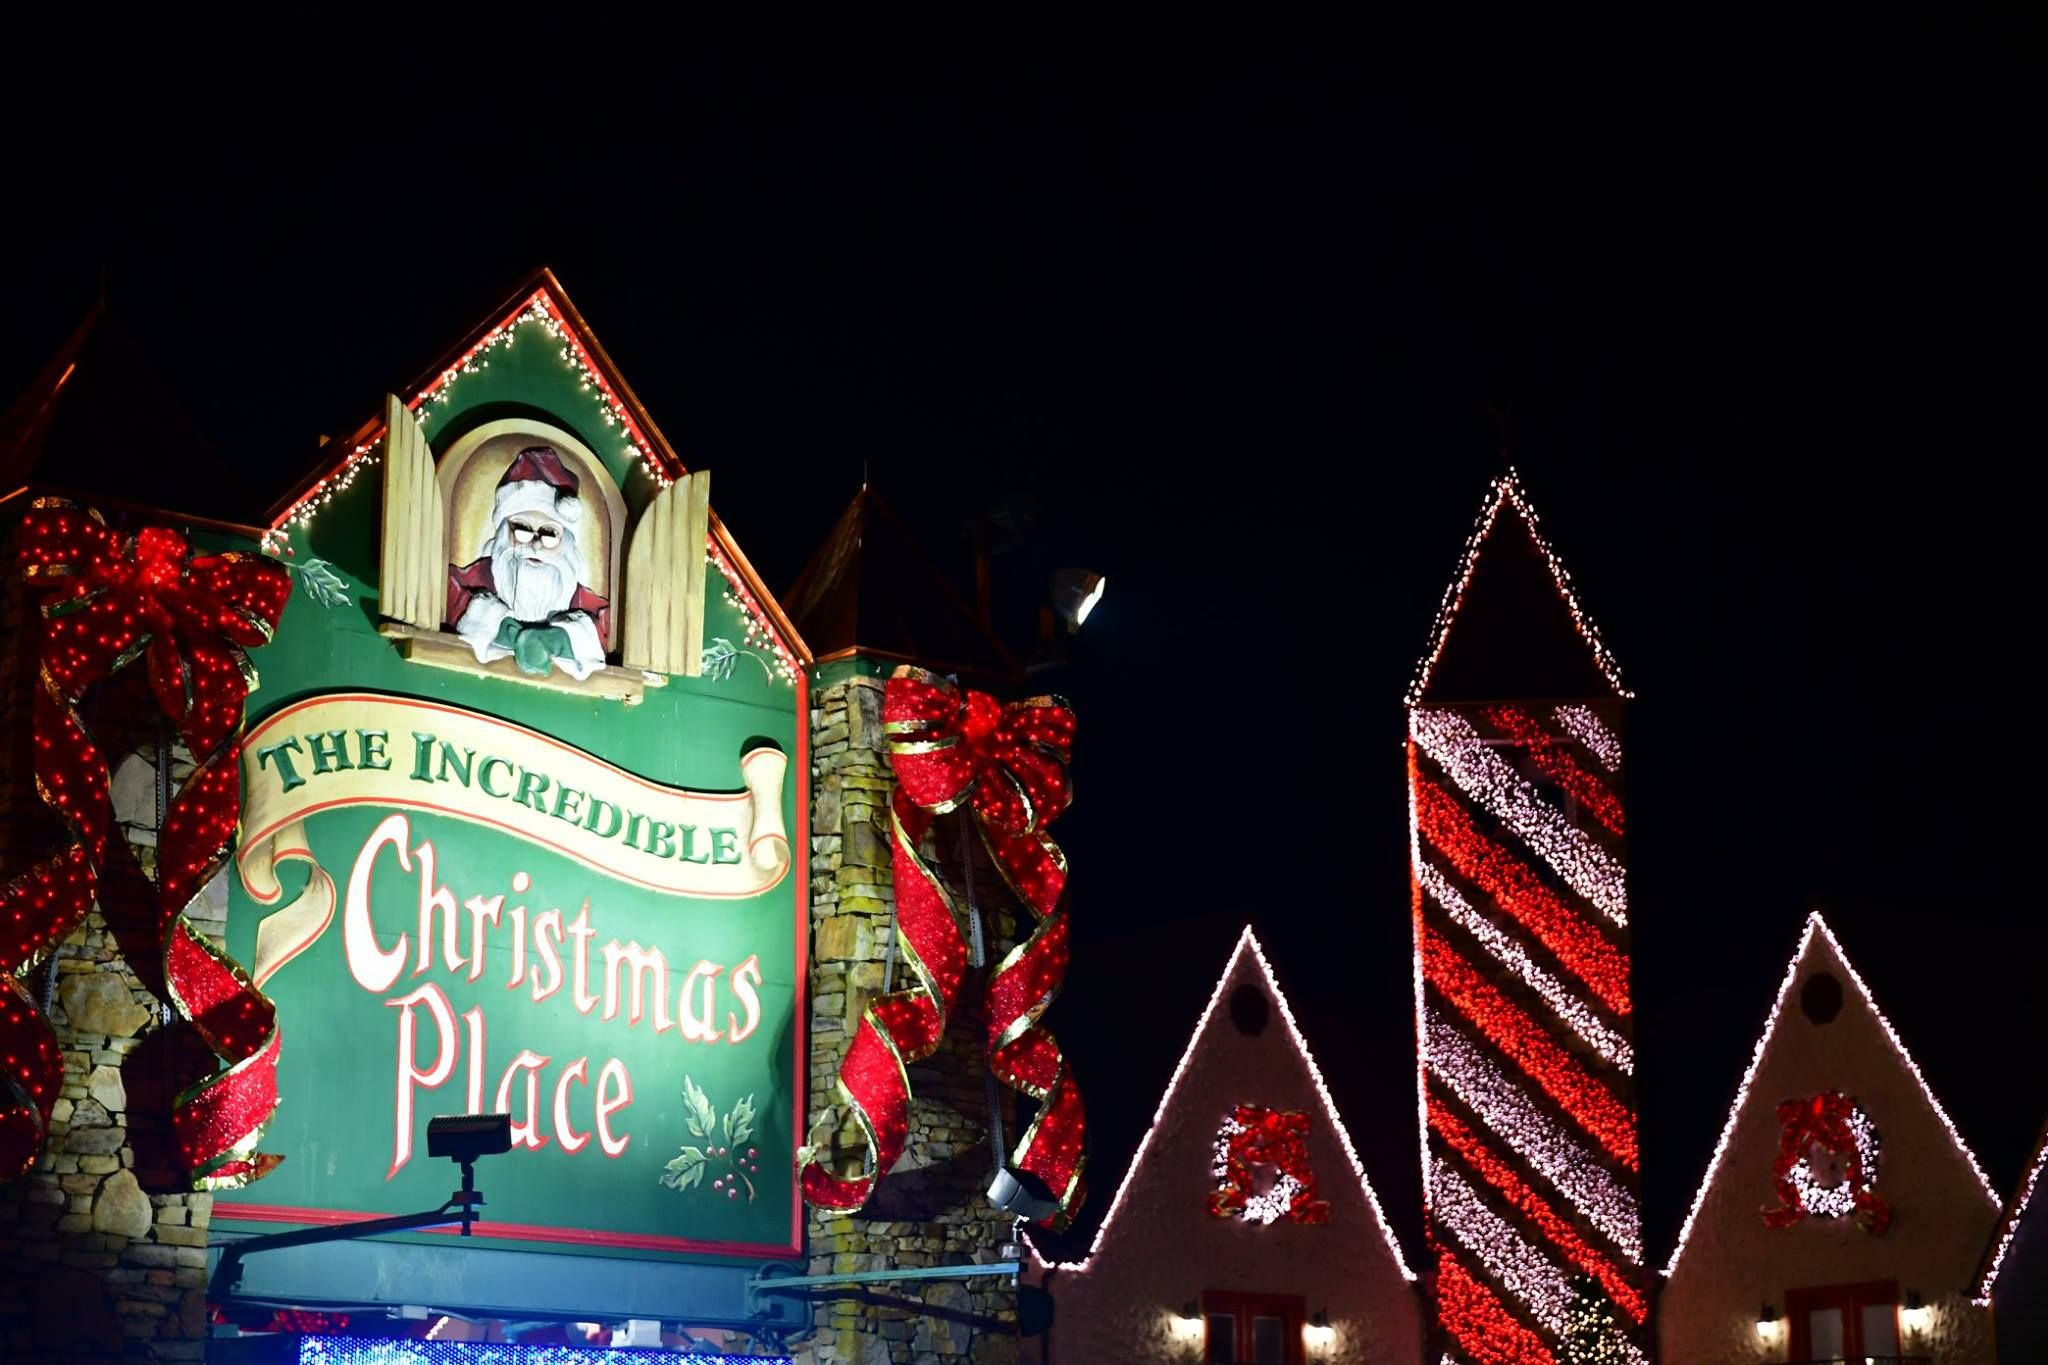 the incredible christmas place in pigeon forge is the largest year round christmas store in